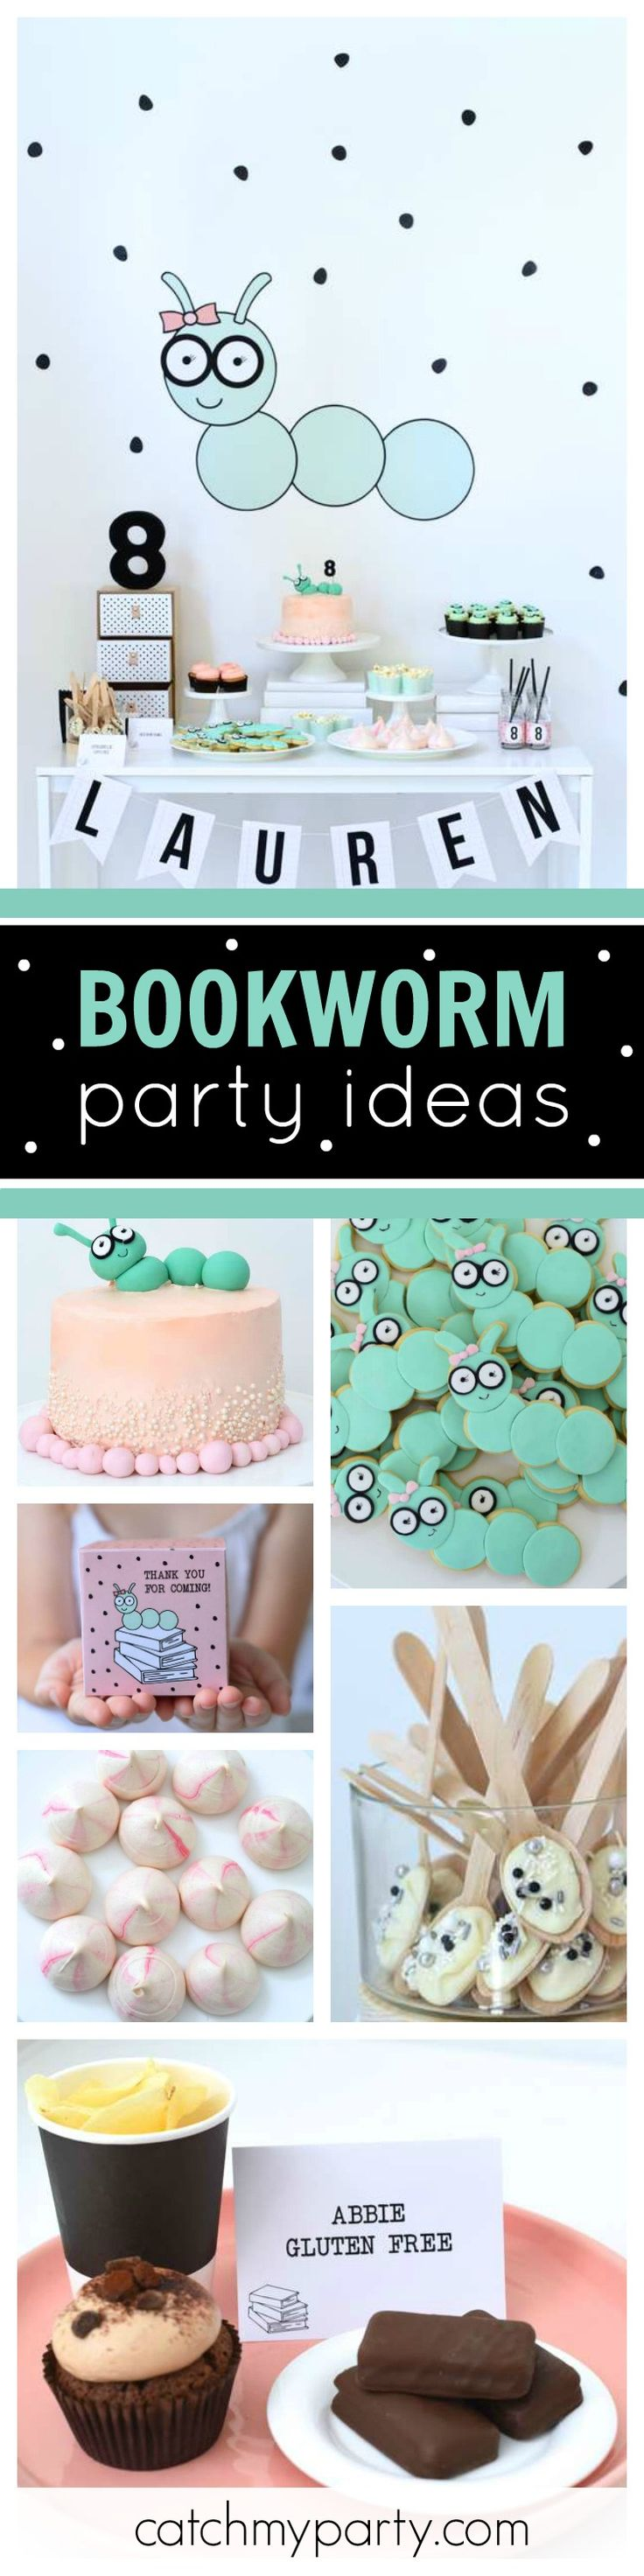 Take a look at this perfect party for bookworms. The simple designed dessert table and deserts are so cool! See more party ideas and share yours at CatchMyParty.com